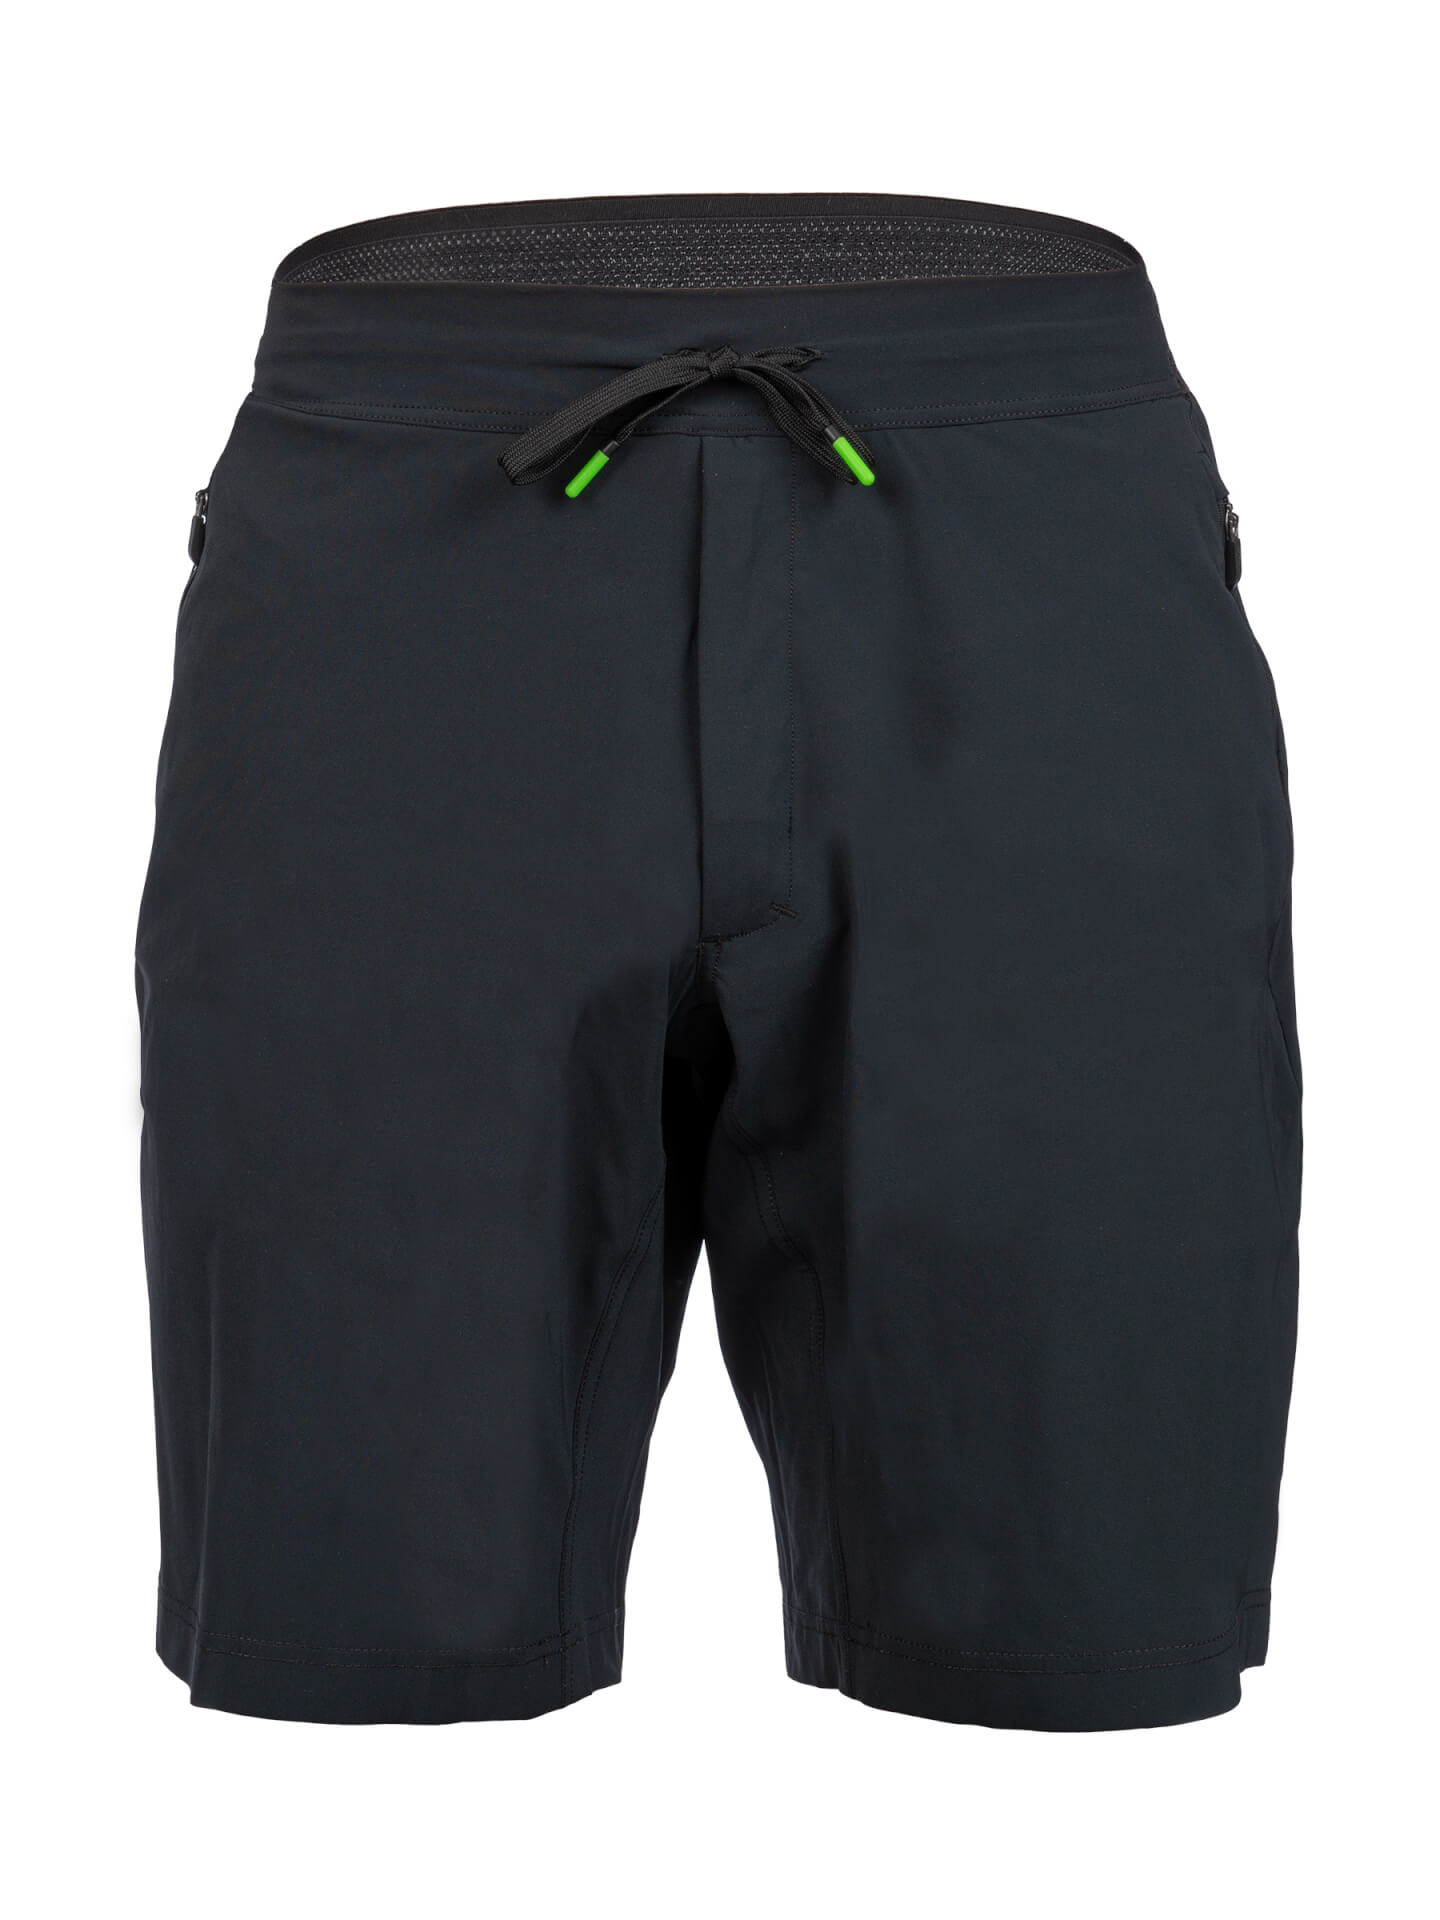 men's active shorts - premium activerwear